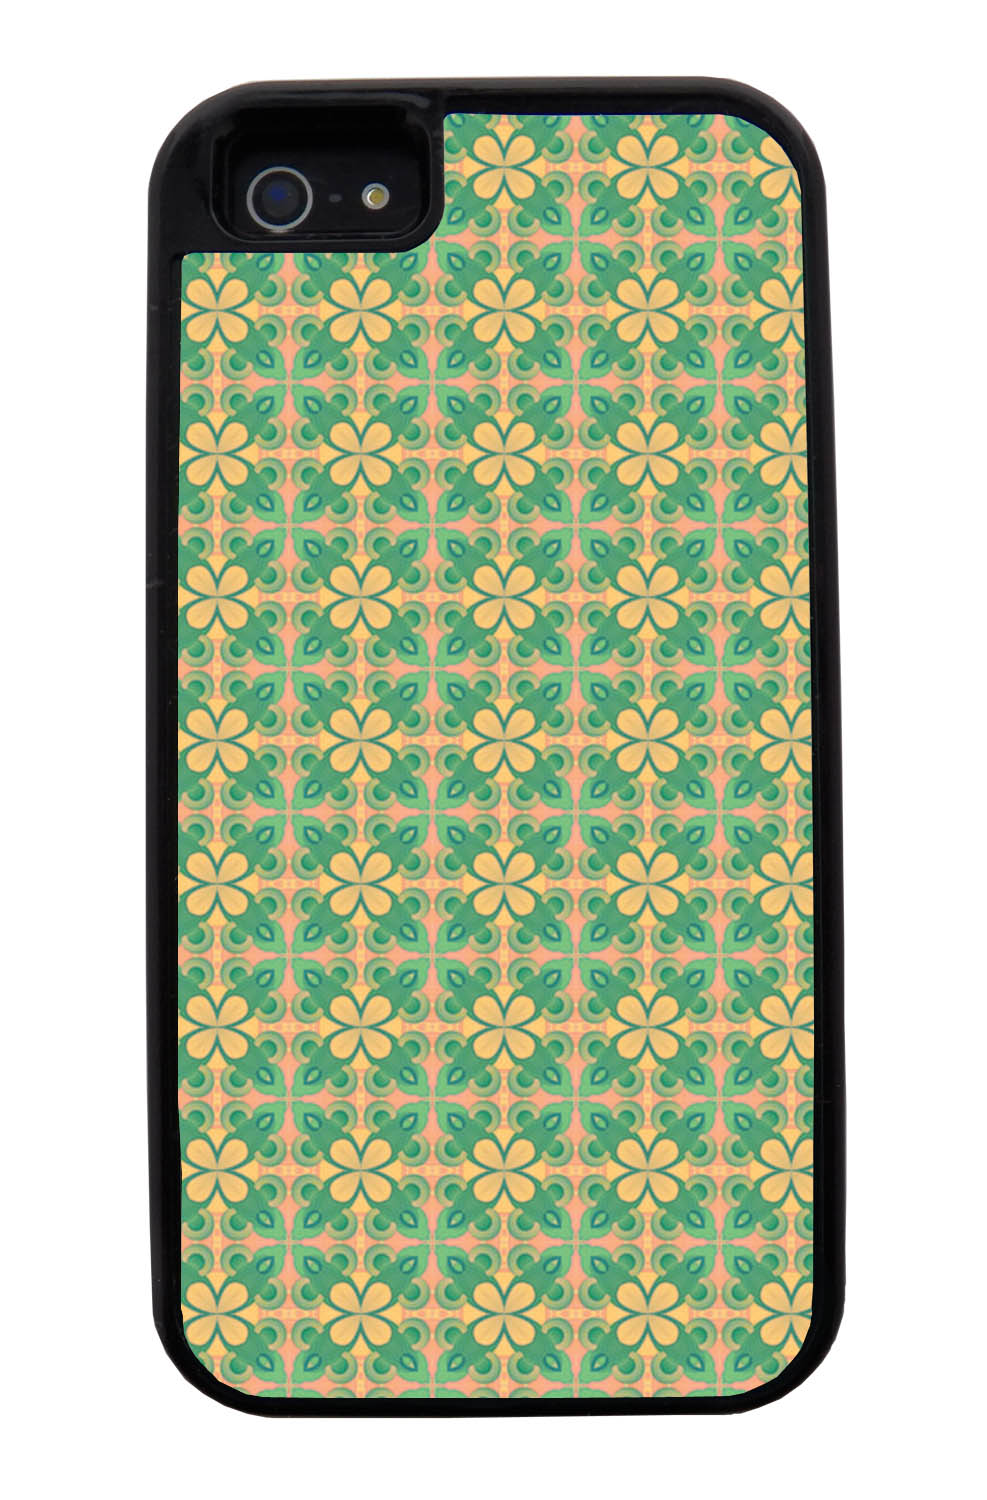 Apple iPhone 5 / 5S Abstract Case - Green and Yellow - Flower Petal Like - Black Tough Hybrid Case